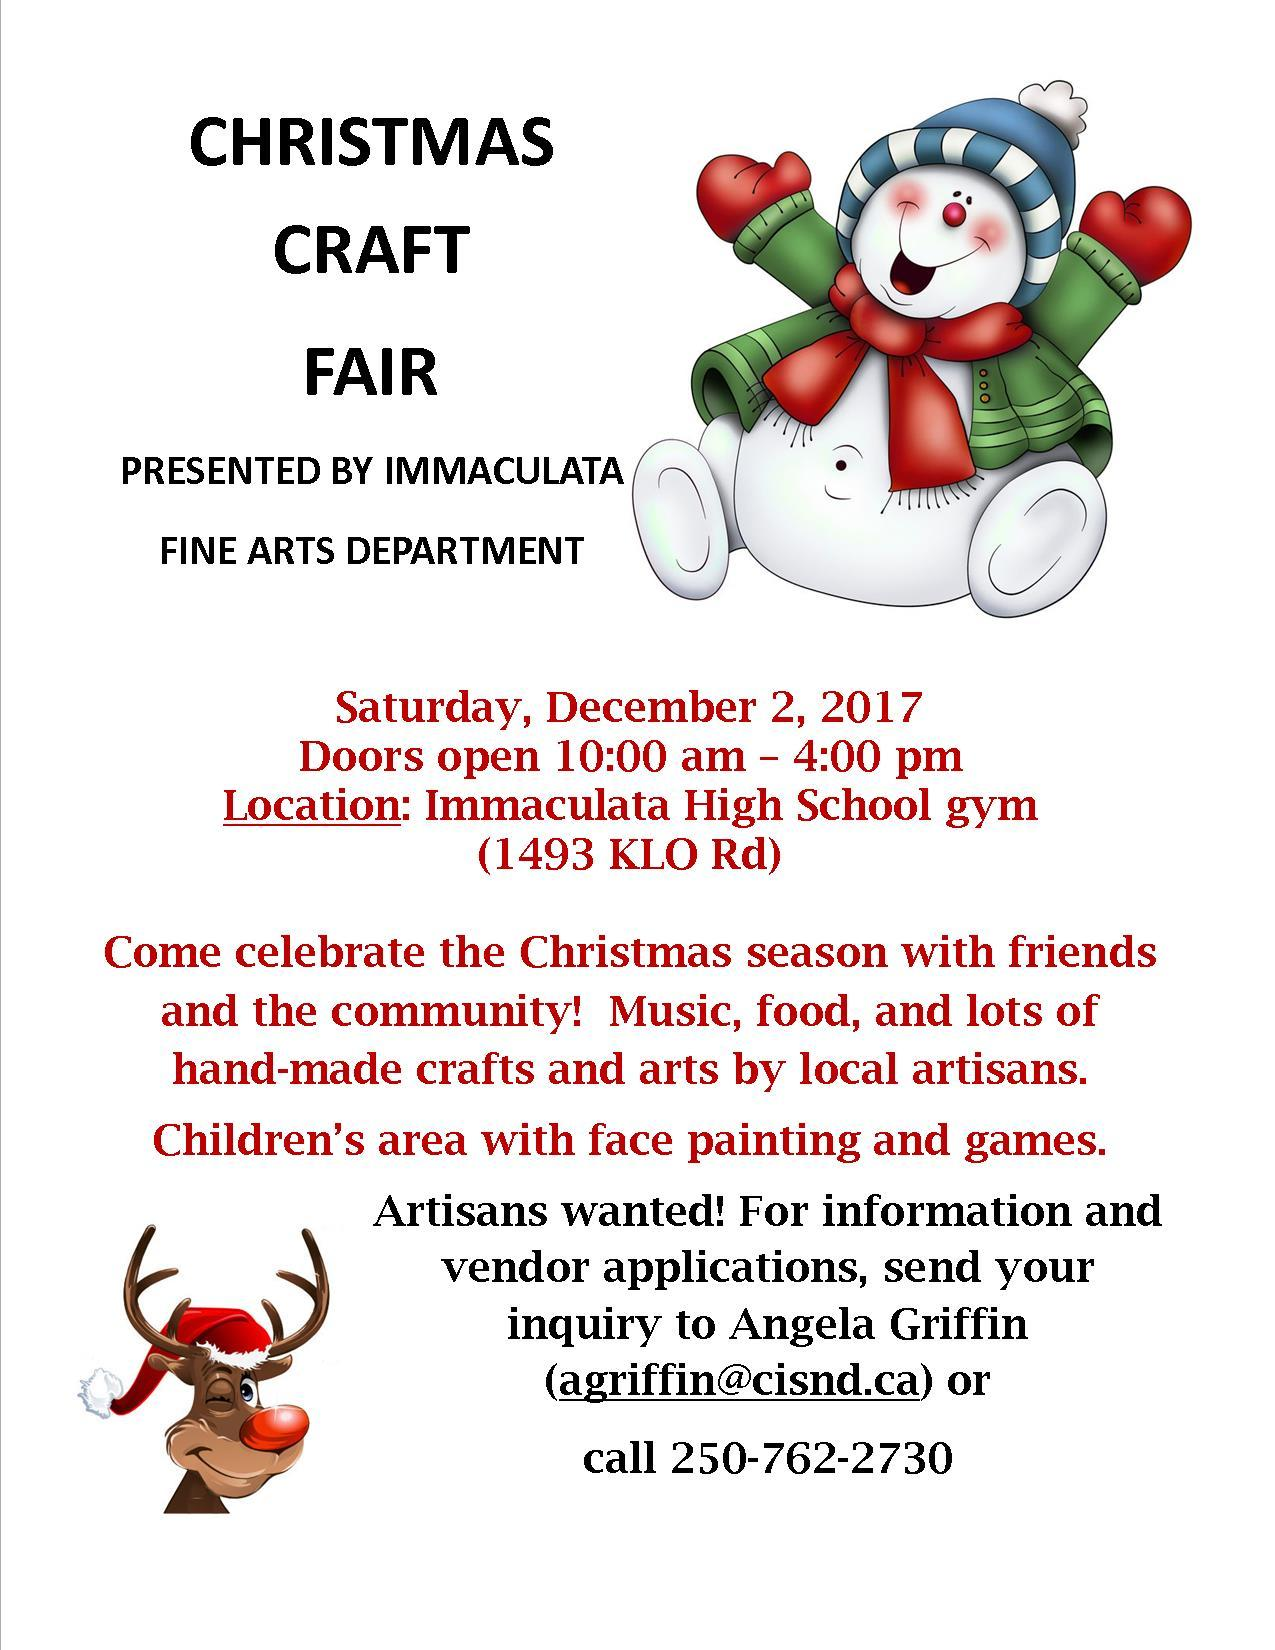 VENDORS NEEDED - CHRISTMAS CRAFT FAIR - DECEMBER 2ND